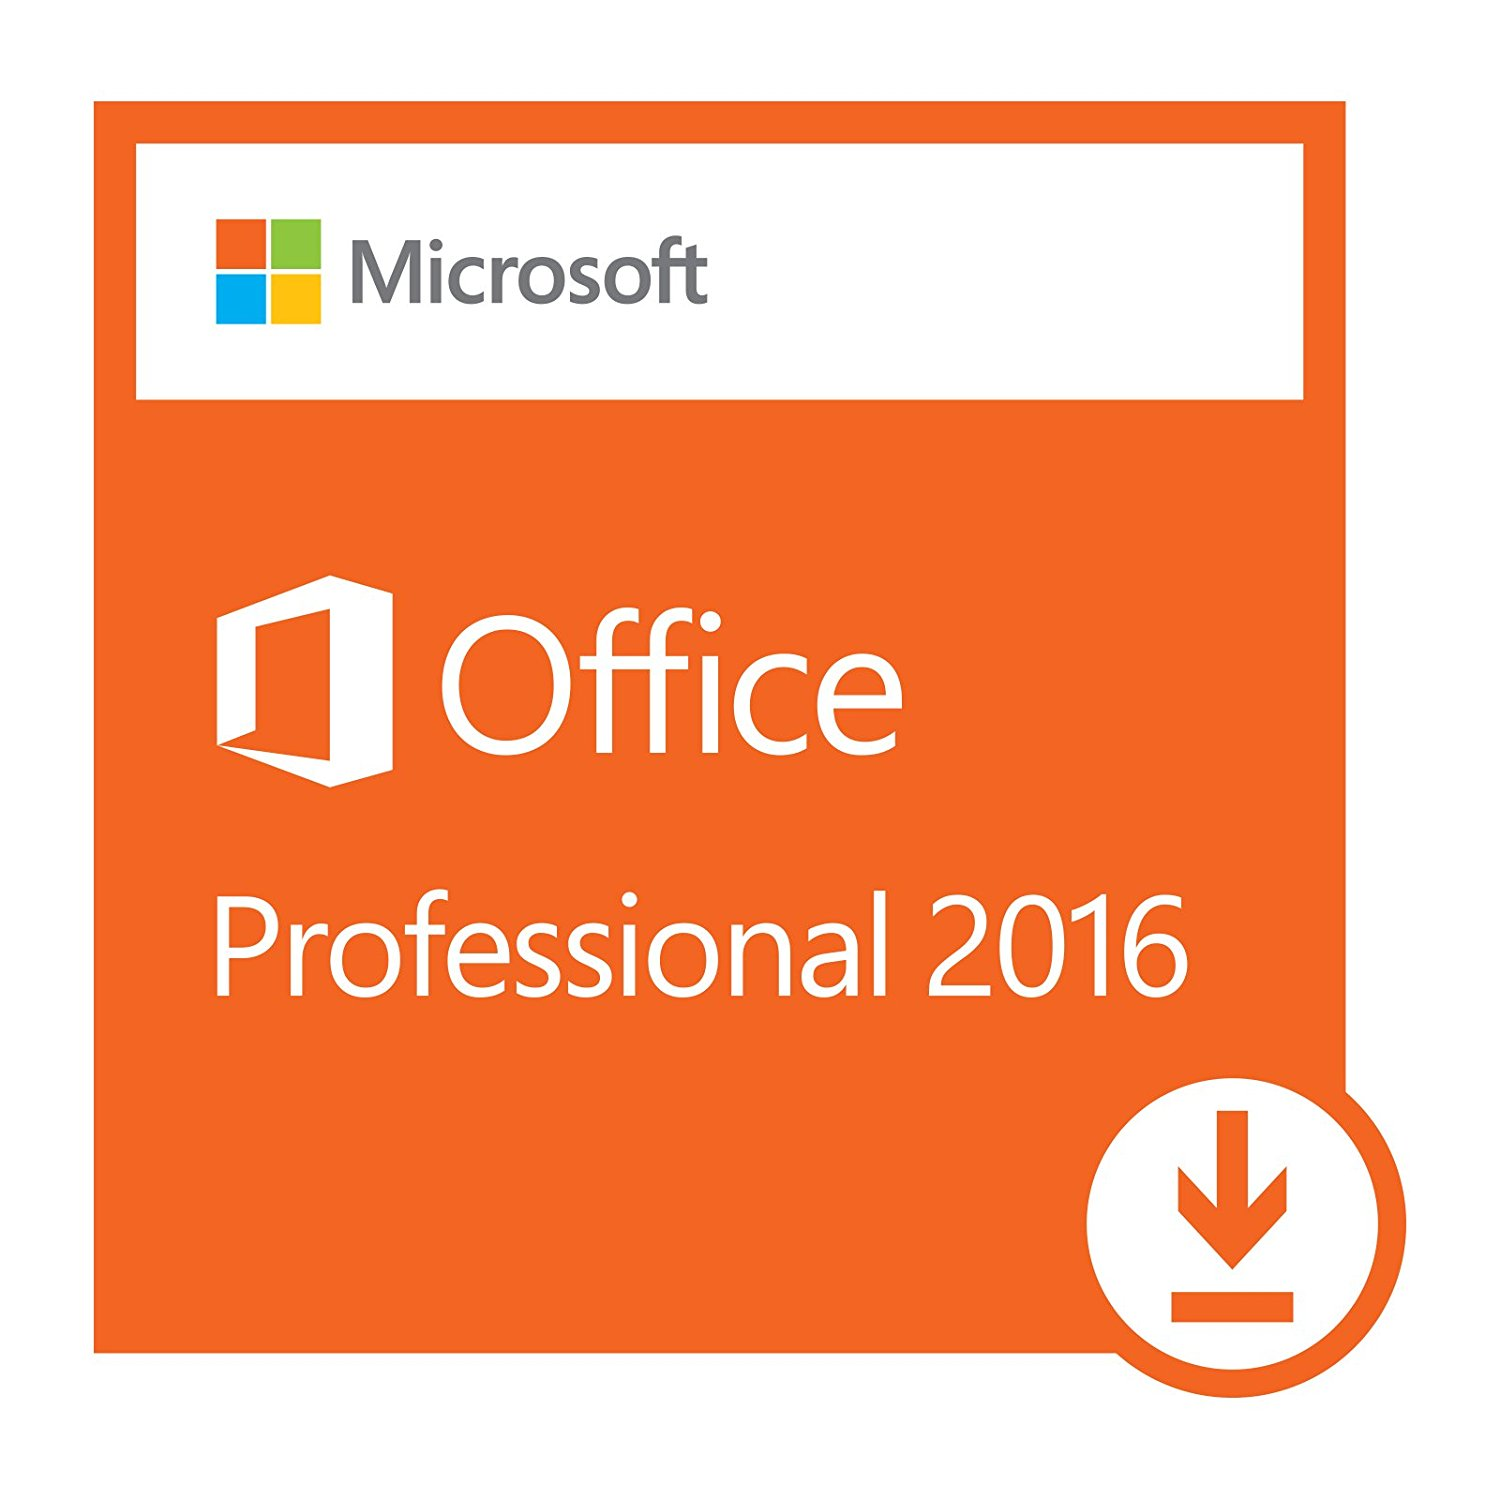 Microsoft Office Professional 2016 - 1 PC Download » MS OFFICE WORKS  Australia